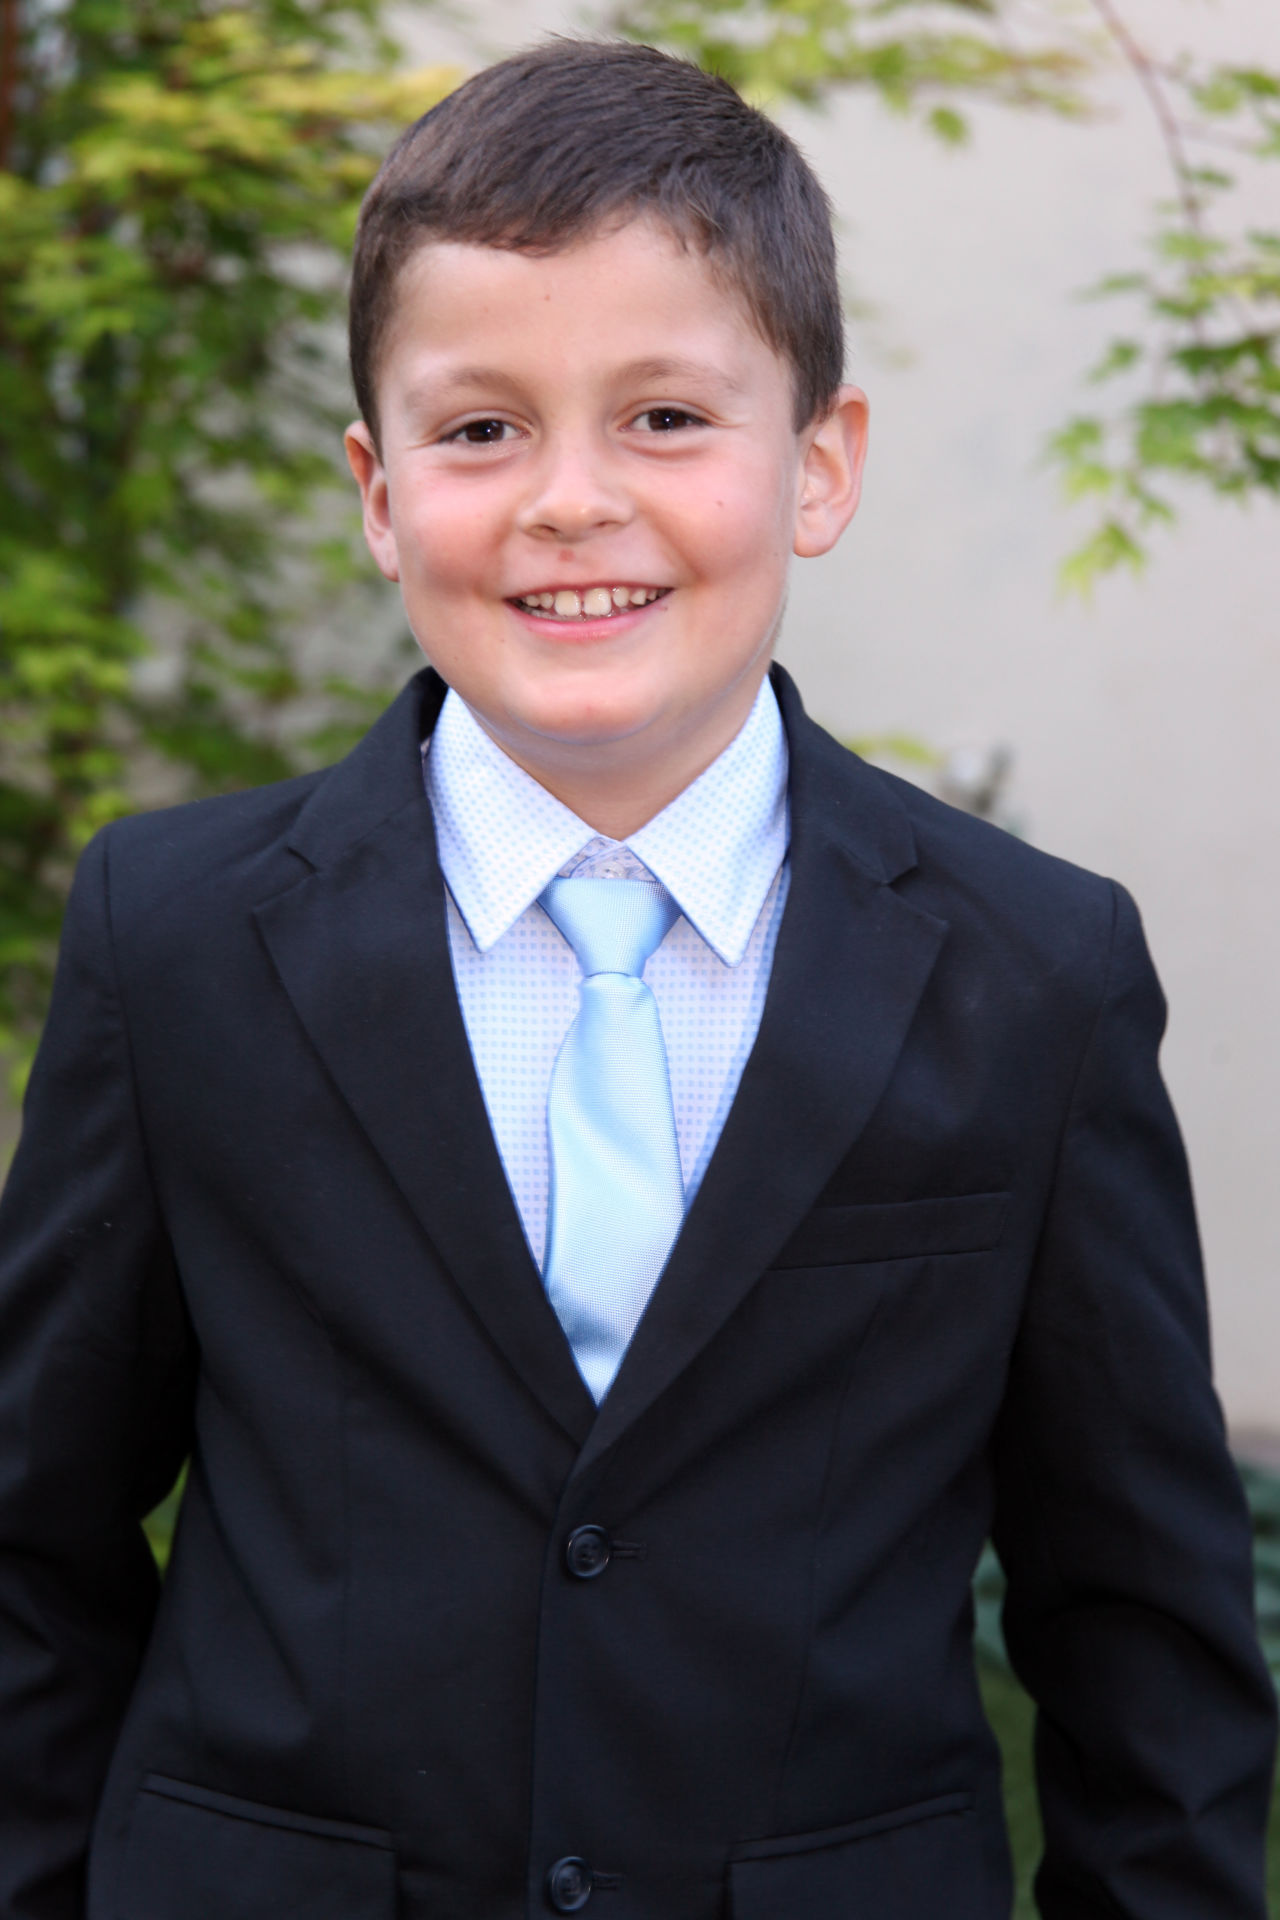 A boy's First Communion portrait at Barbara Bell Photography allows the young gentleman to have his own special portrait session for this special day.